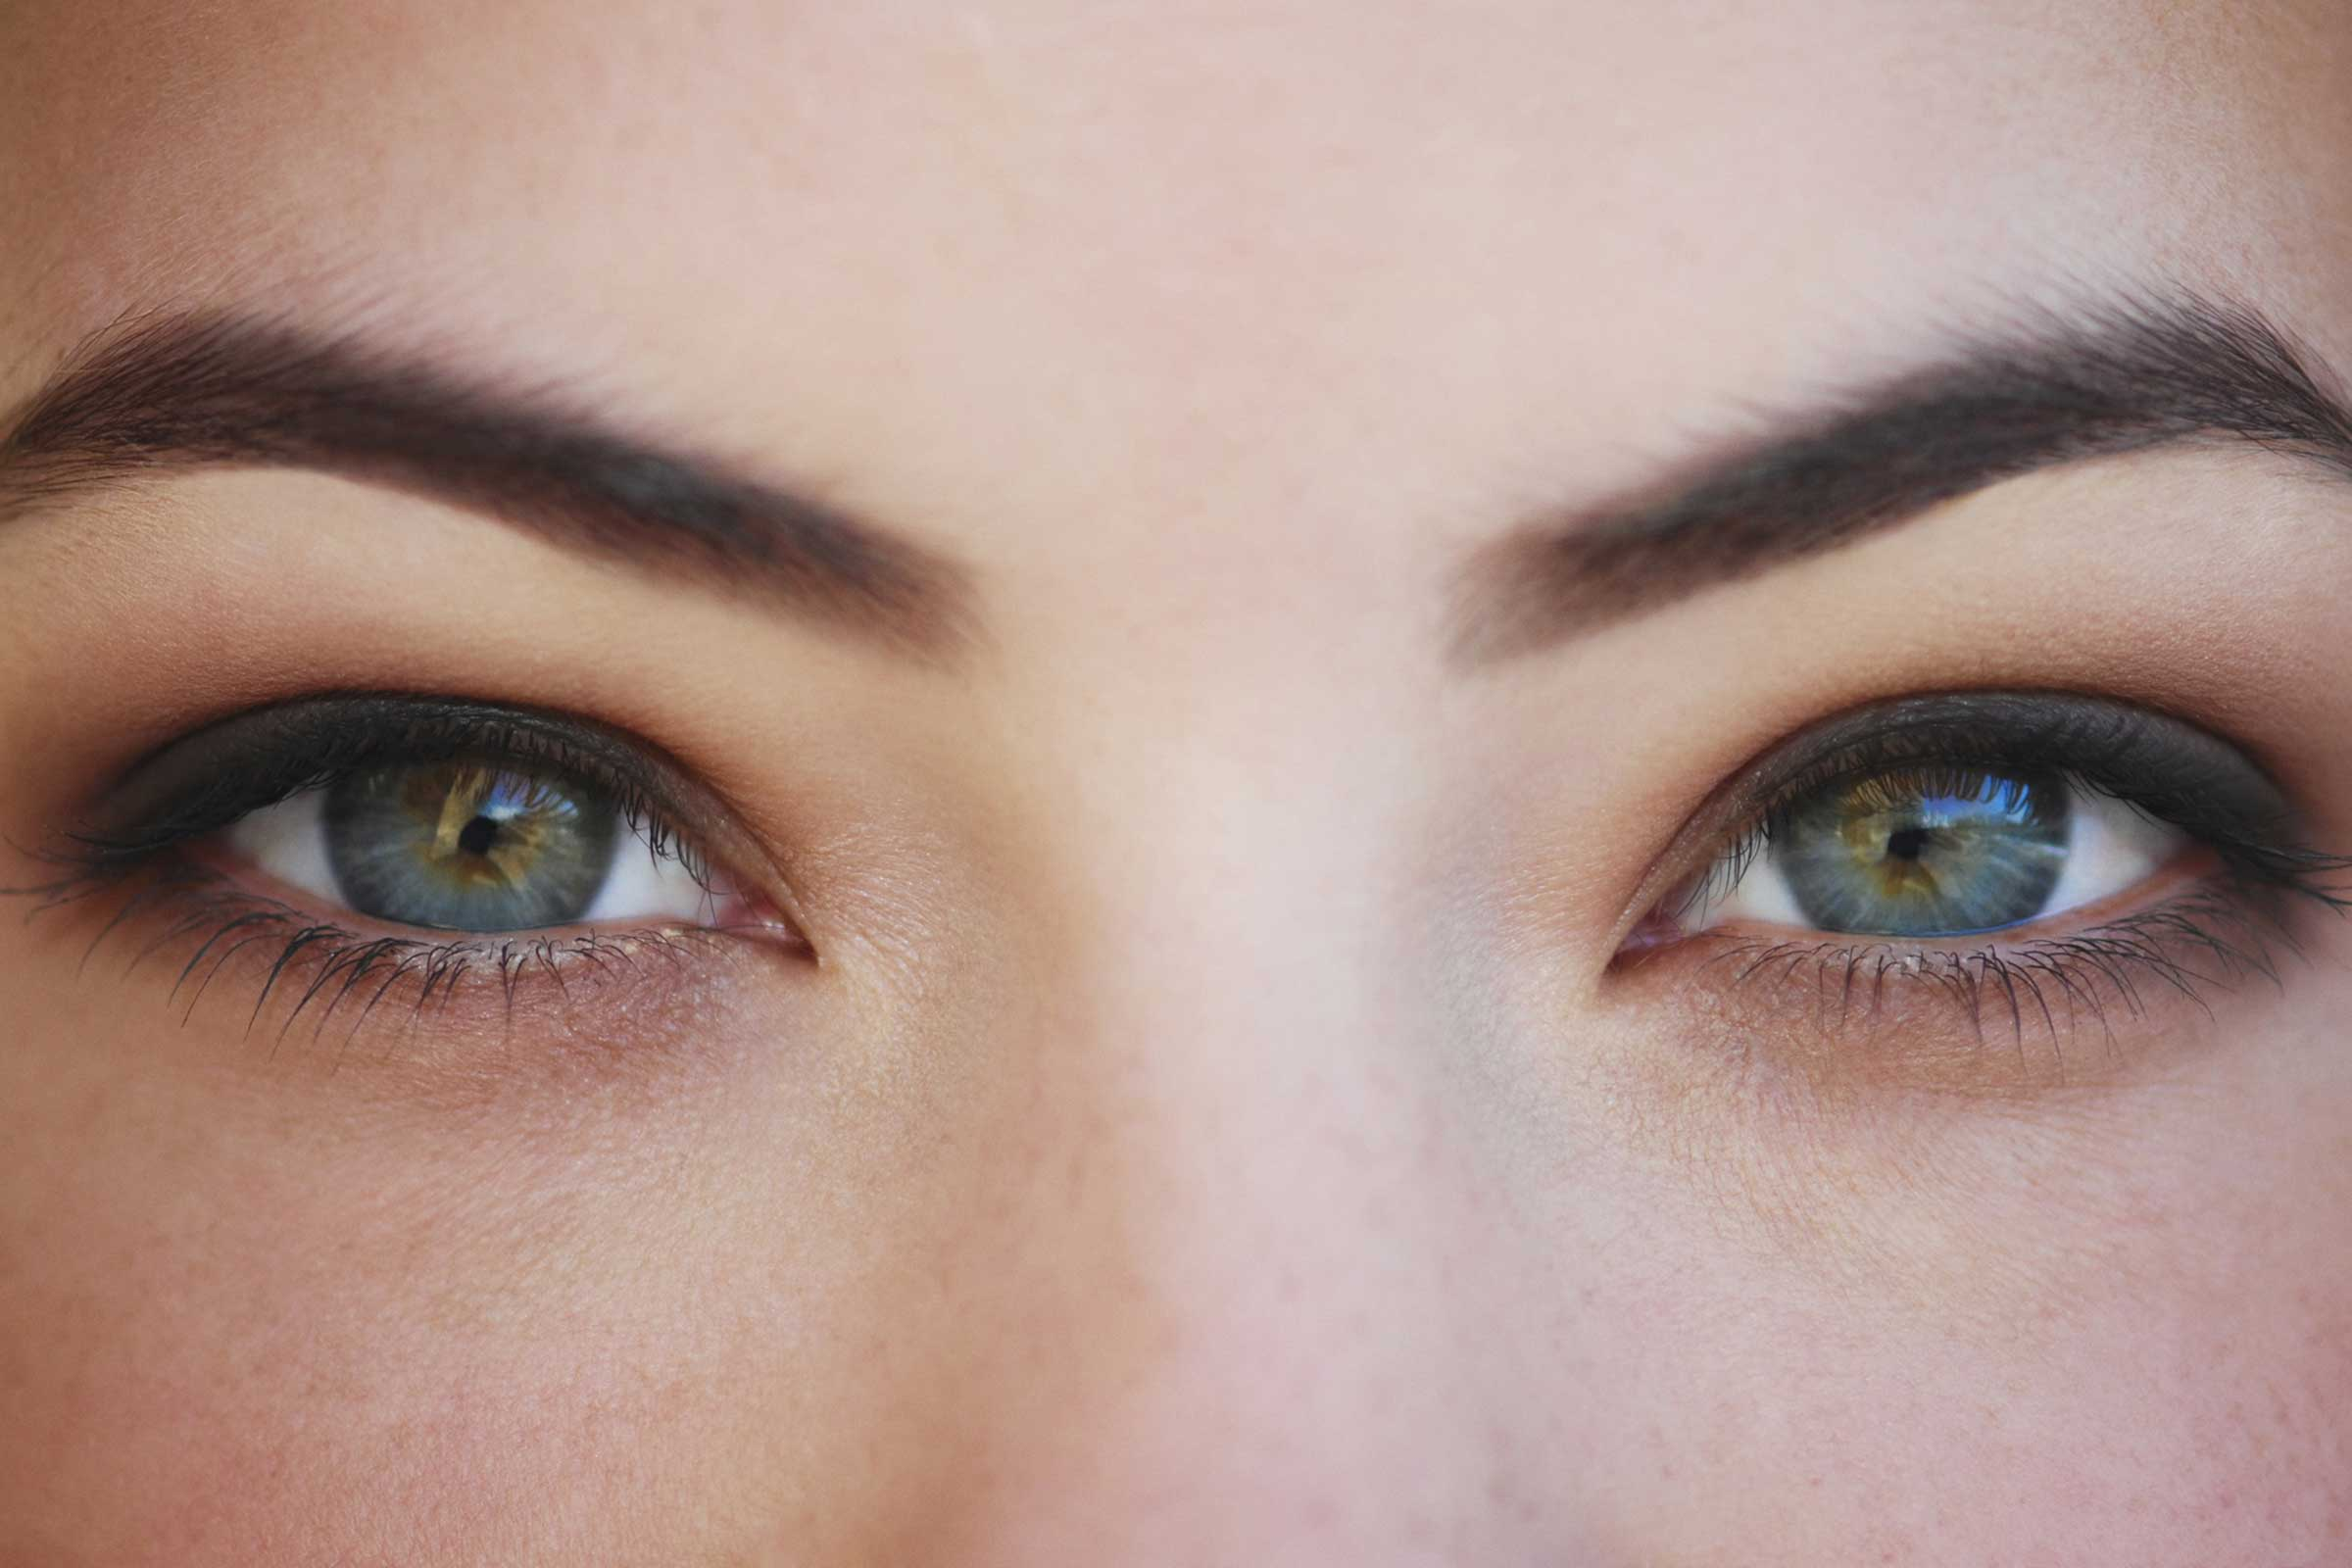 06-Little-Body-Changes-that-Reveal-a-Lot-About-Your-Health-brows-157504068_EmmaKStudio.jpg